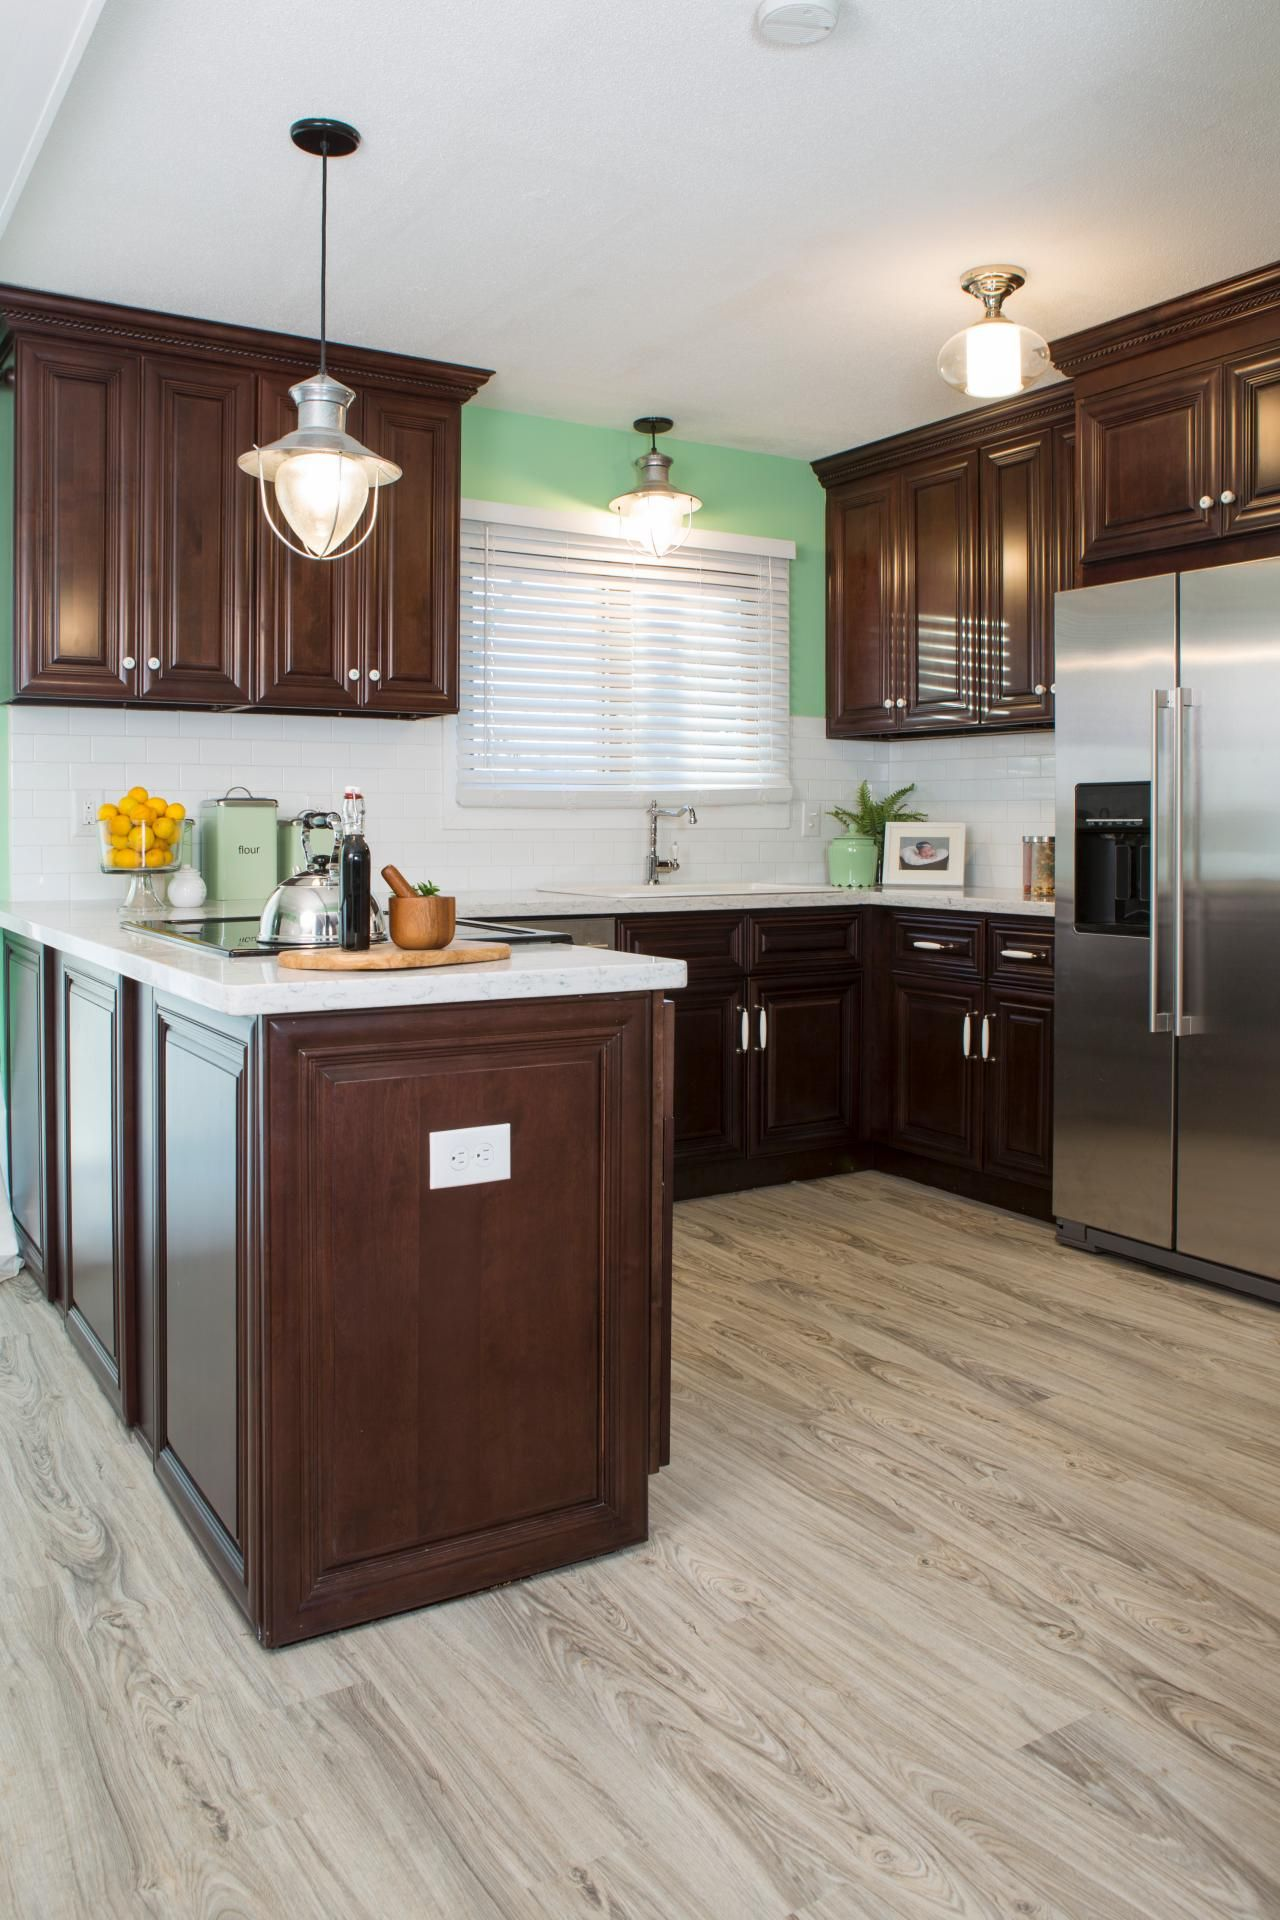 Image result for living room kitchen open concept with ...